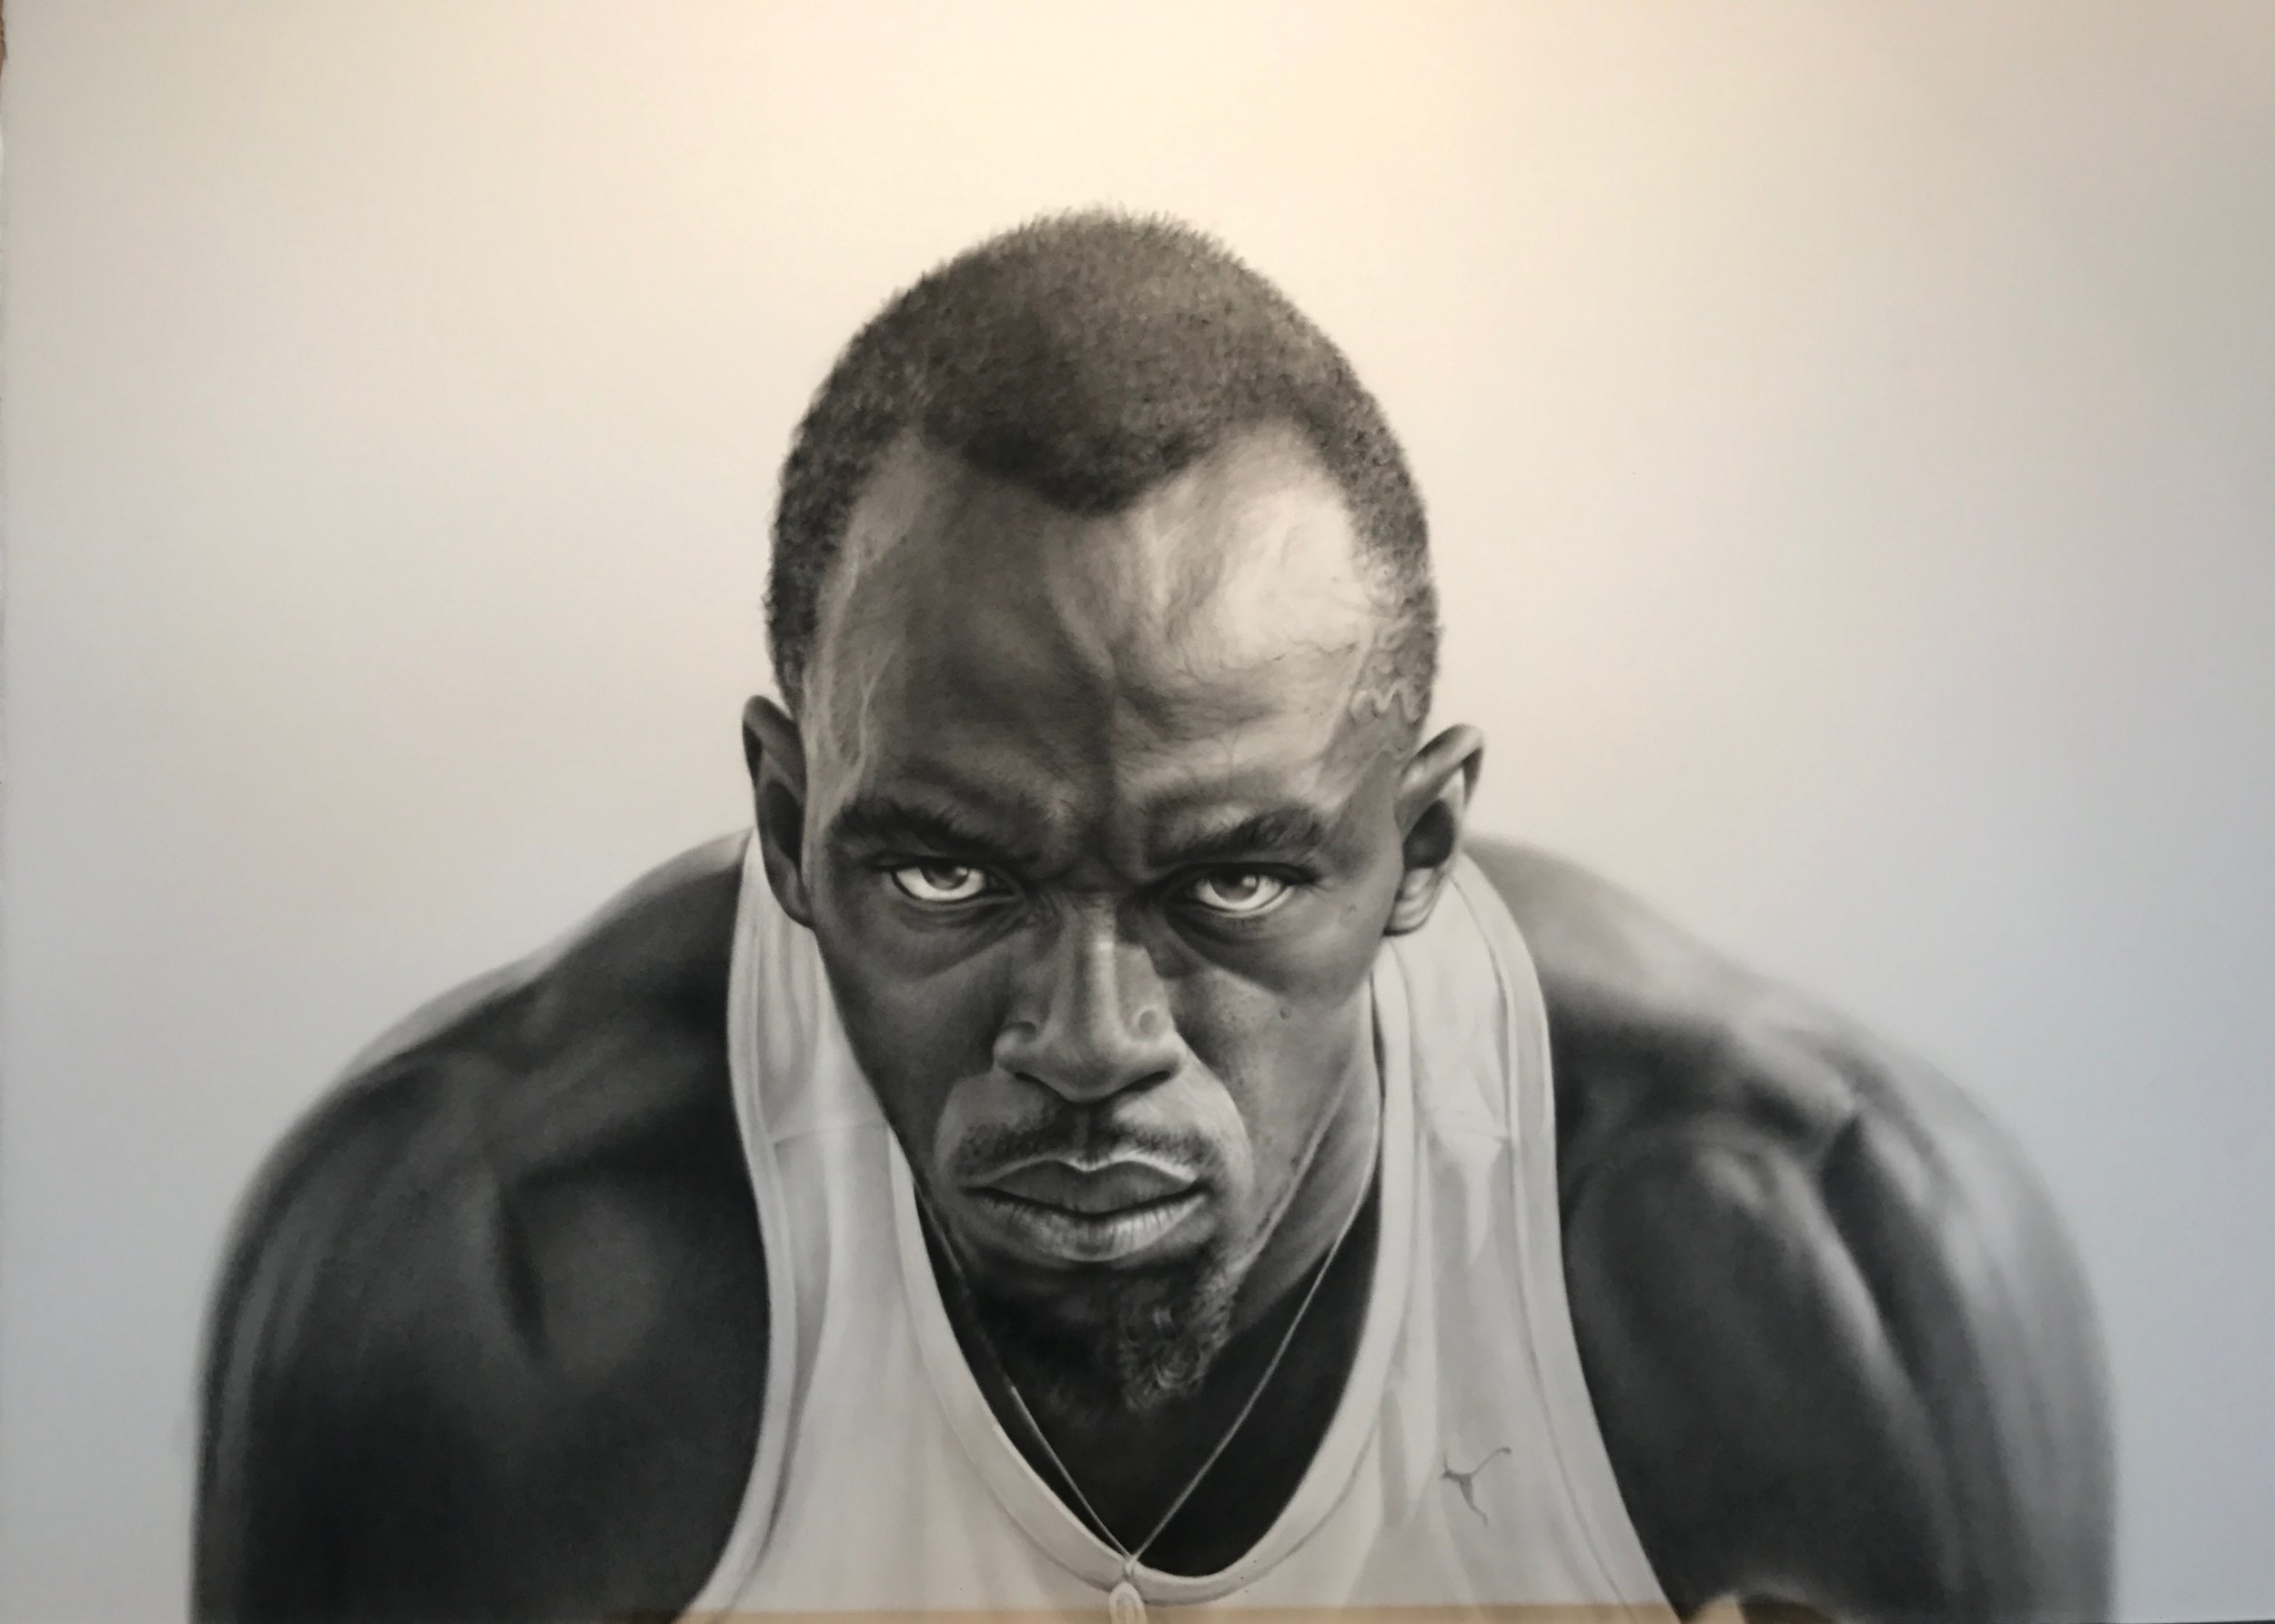 Charcoal portrait of Usain Bolt - The Greatest sprinter of all time. I am a runner and an artist and the fastest man on earth inspired me to paint his portrait. I met Usain Bolt when he was visiting Melbourne competing and team captain of the Bolt All- Stars at Nitro Athletics Melbourne.